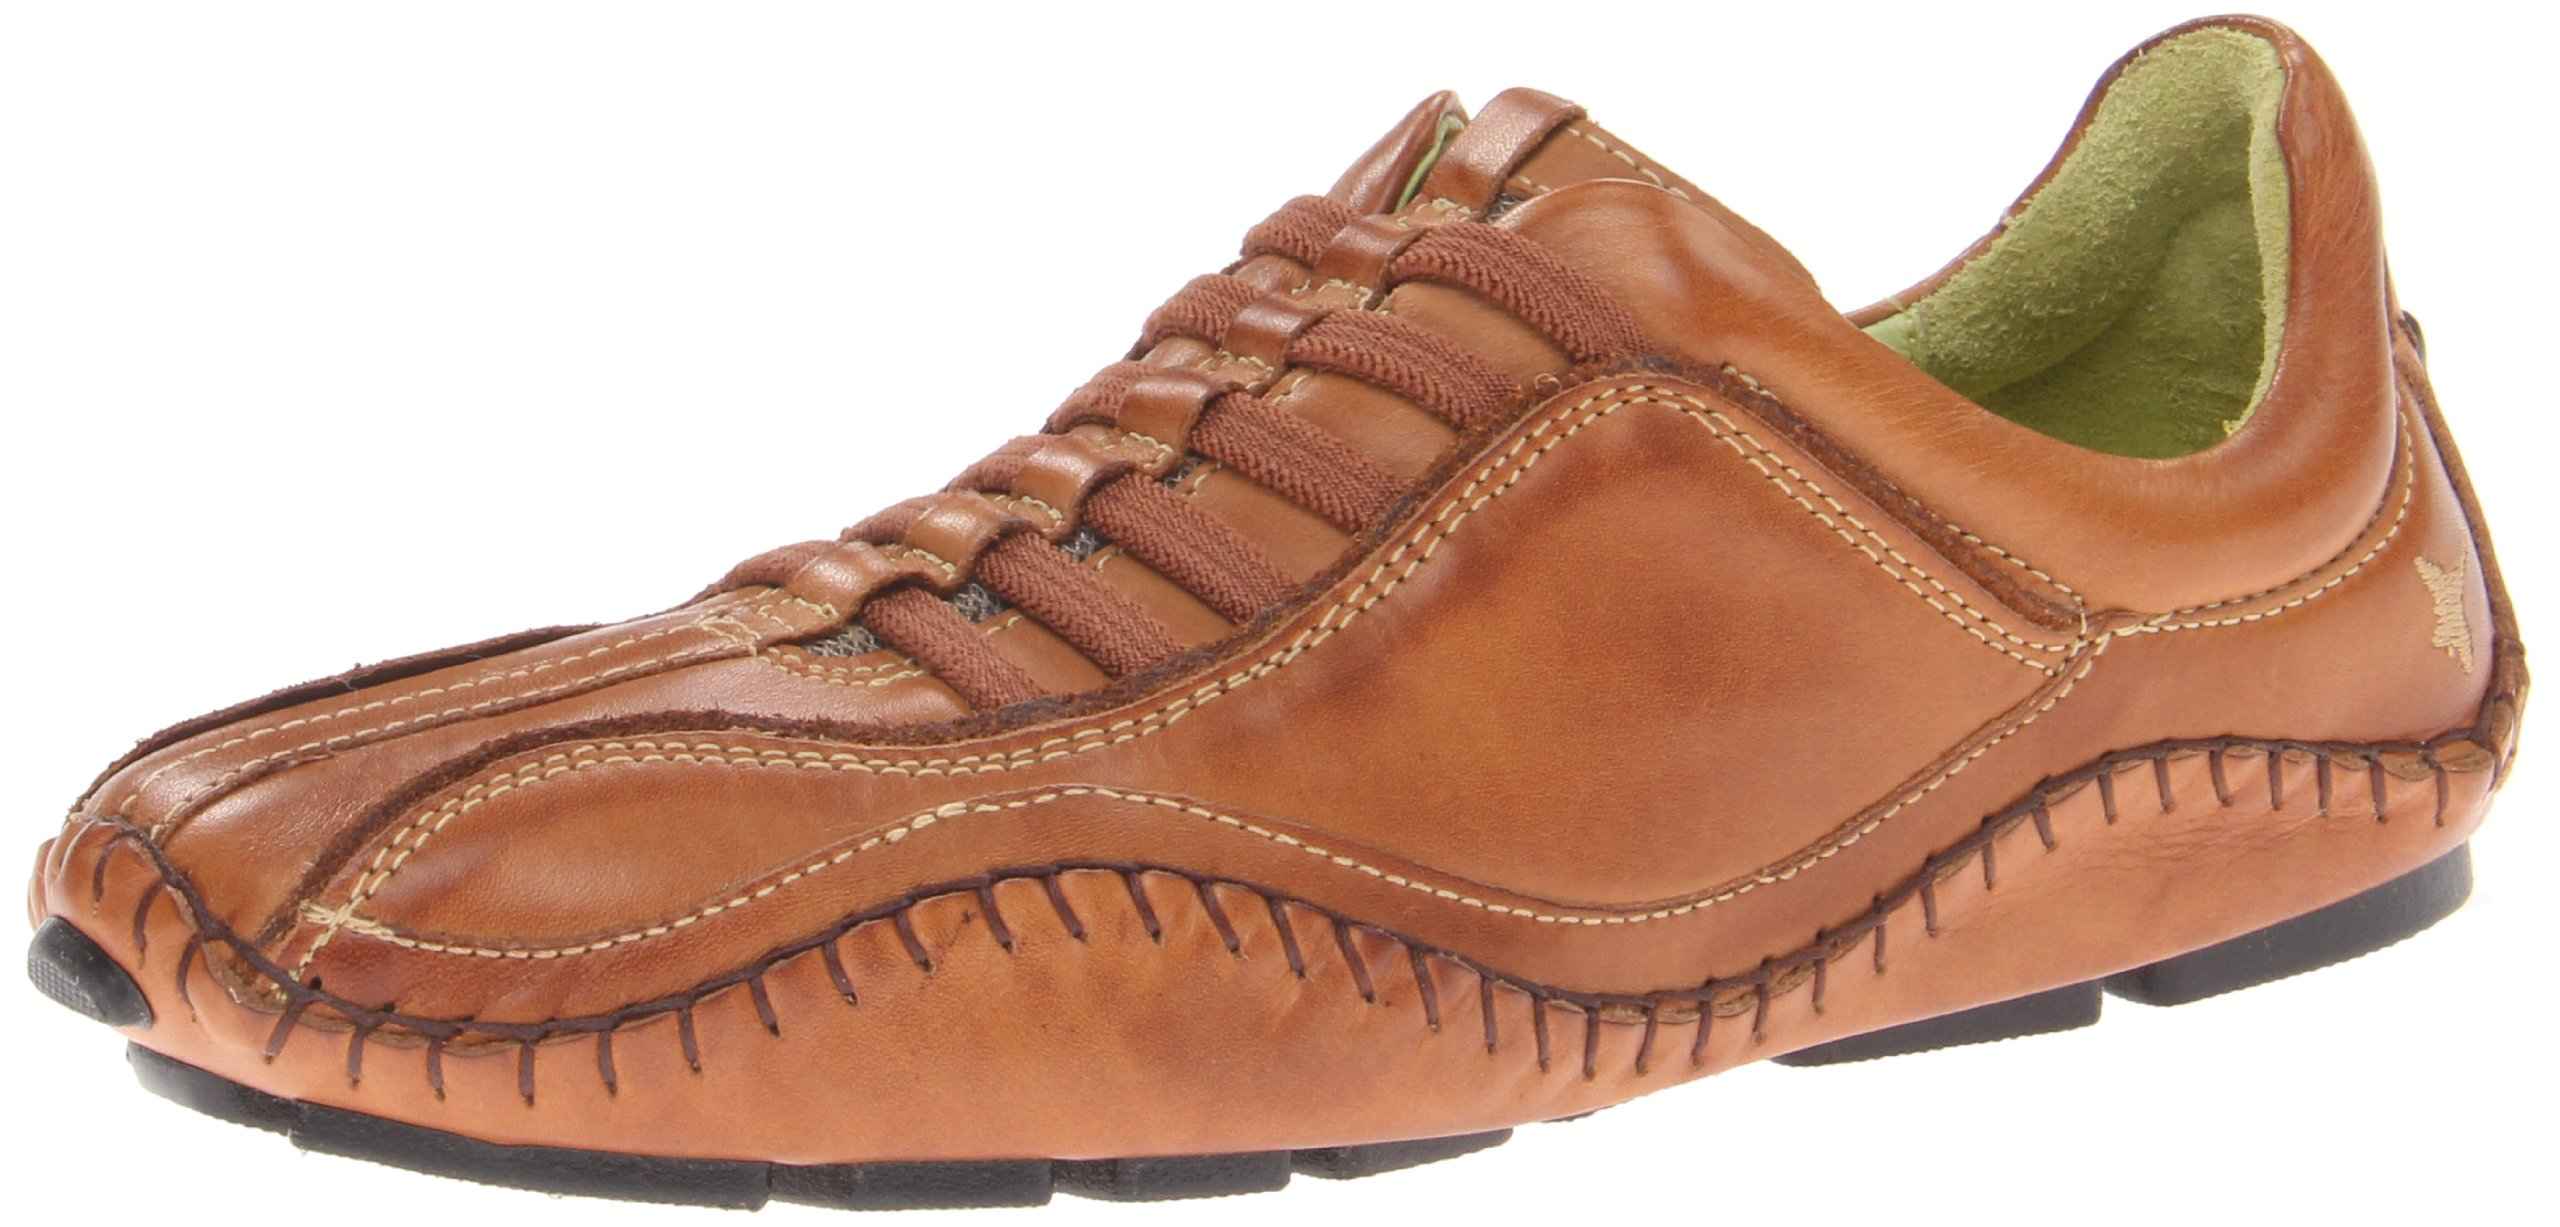 Pikolinos Men's Fuencarral 15A-6175 Shoe,Brandy,41 EU/7.5-8 M US